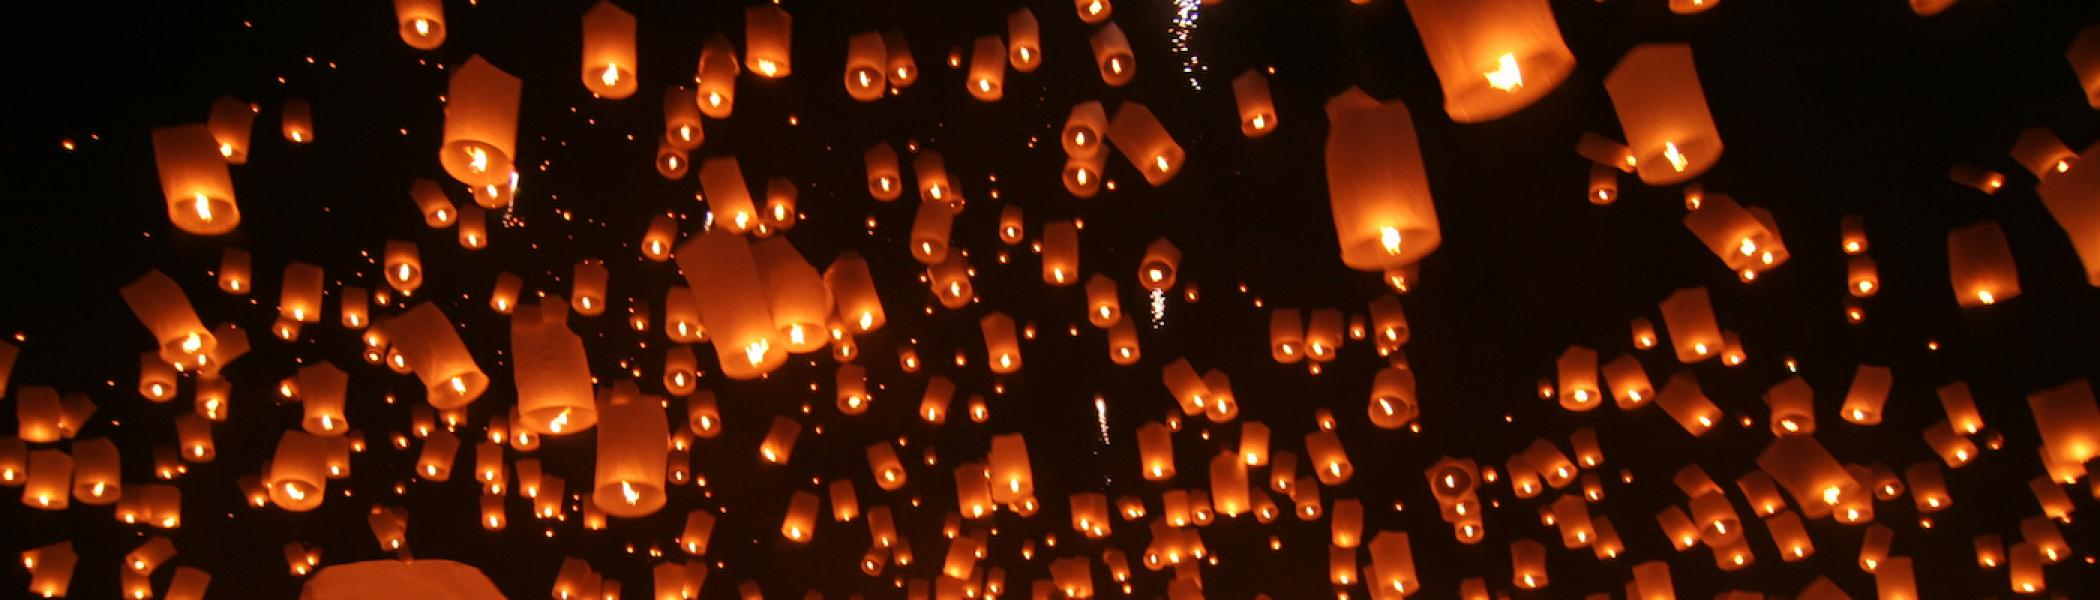 A crowd of people letting go of lanterns